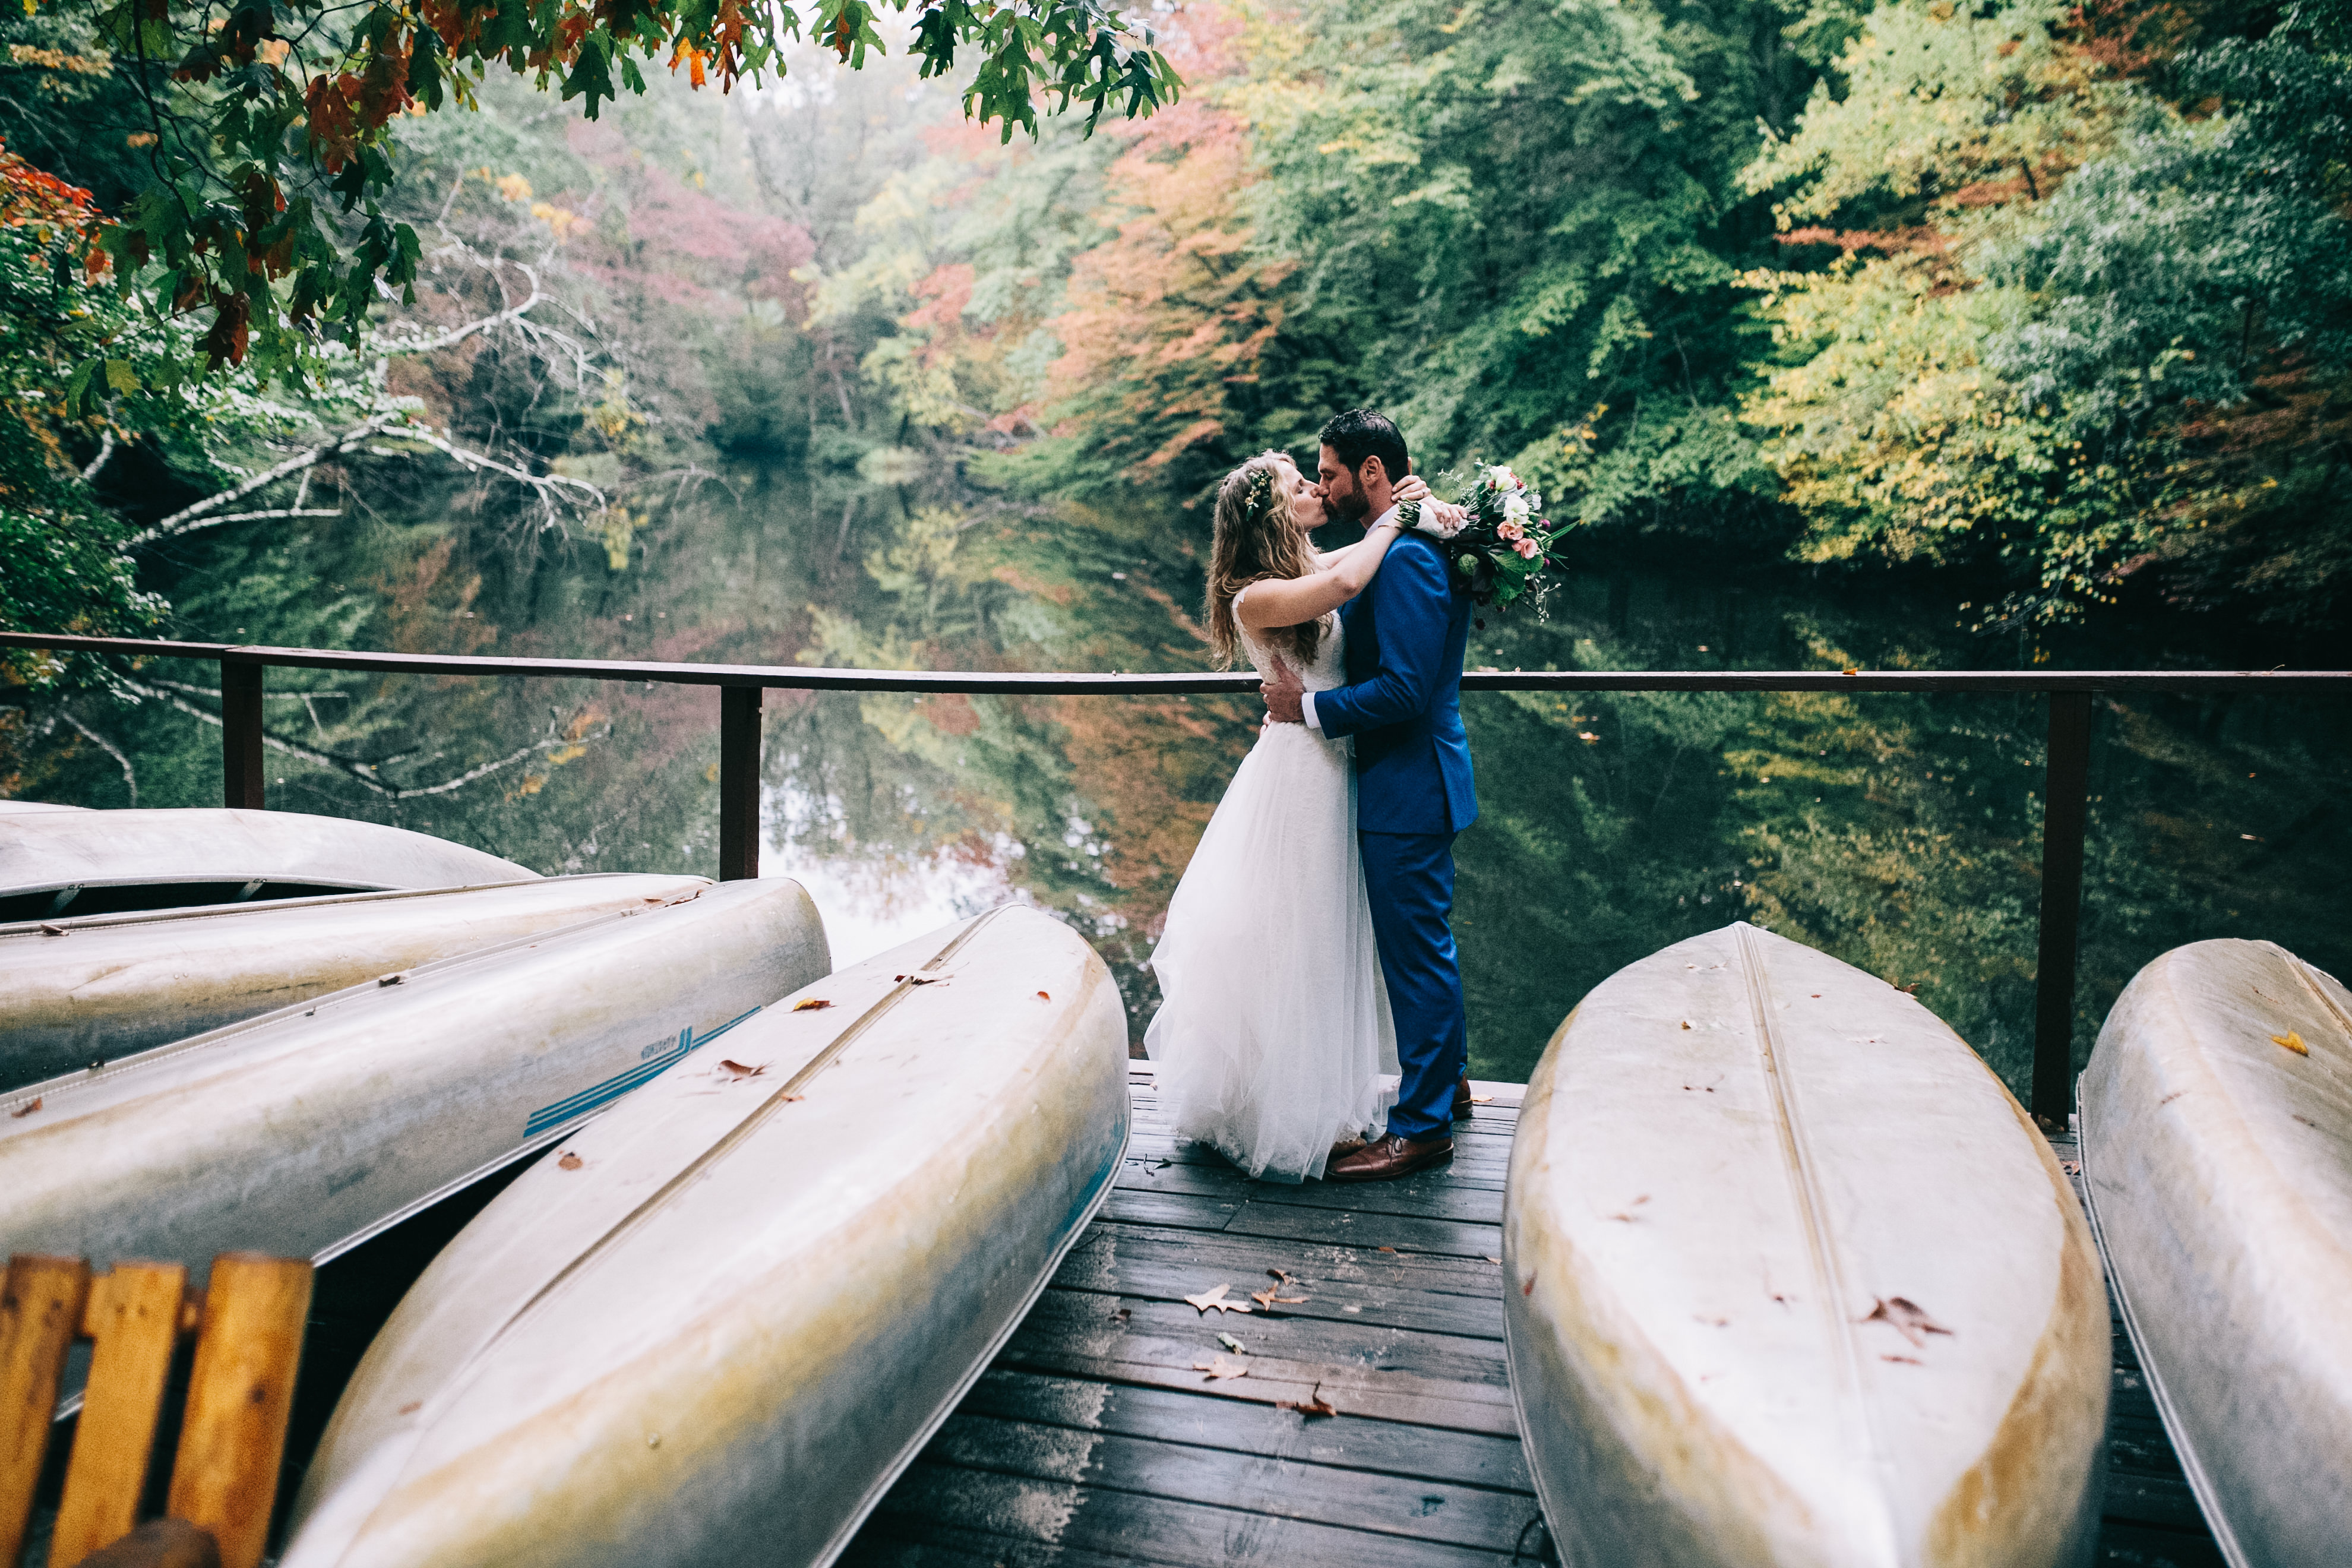 Best Unique Pa Ny Nj Wedding Venues Campground Scout Camp Canoe